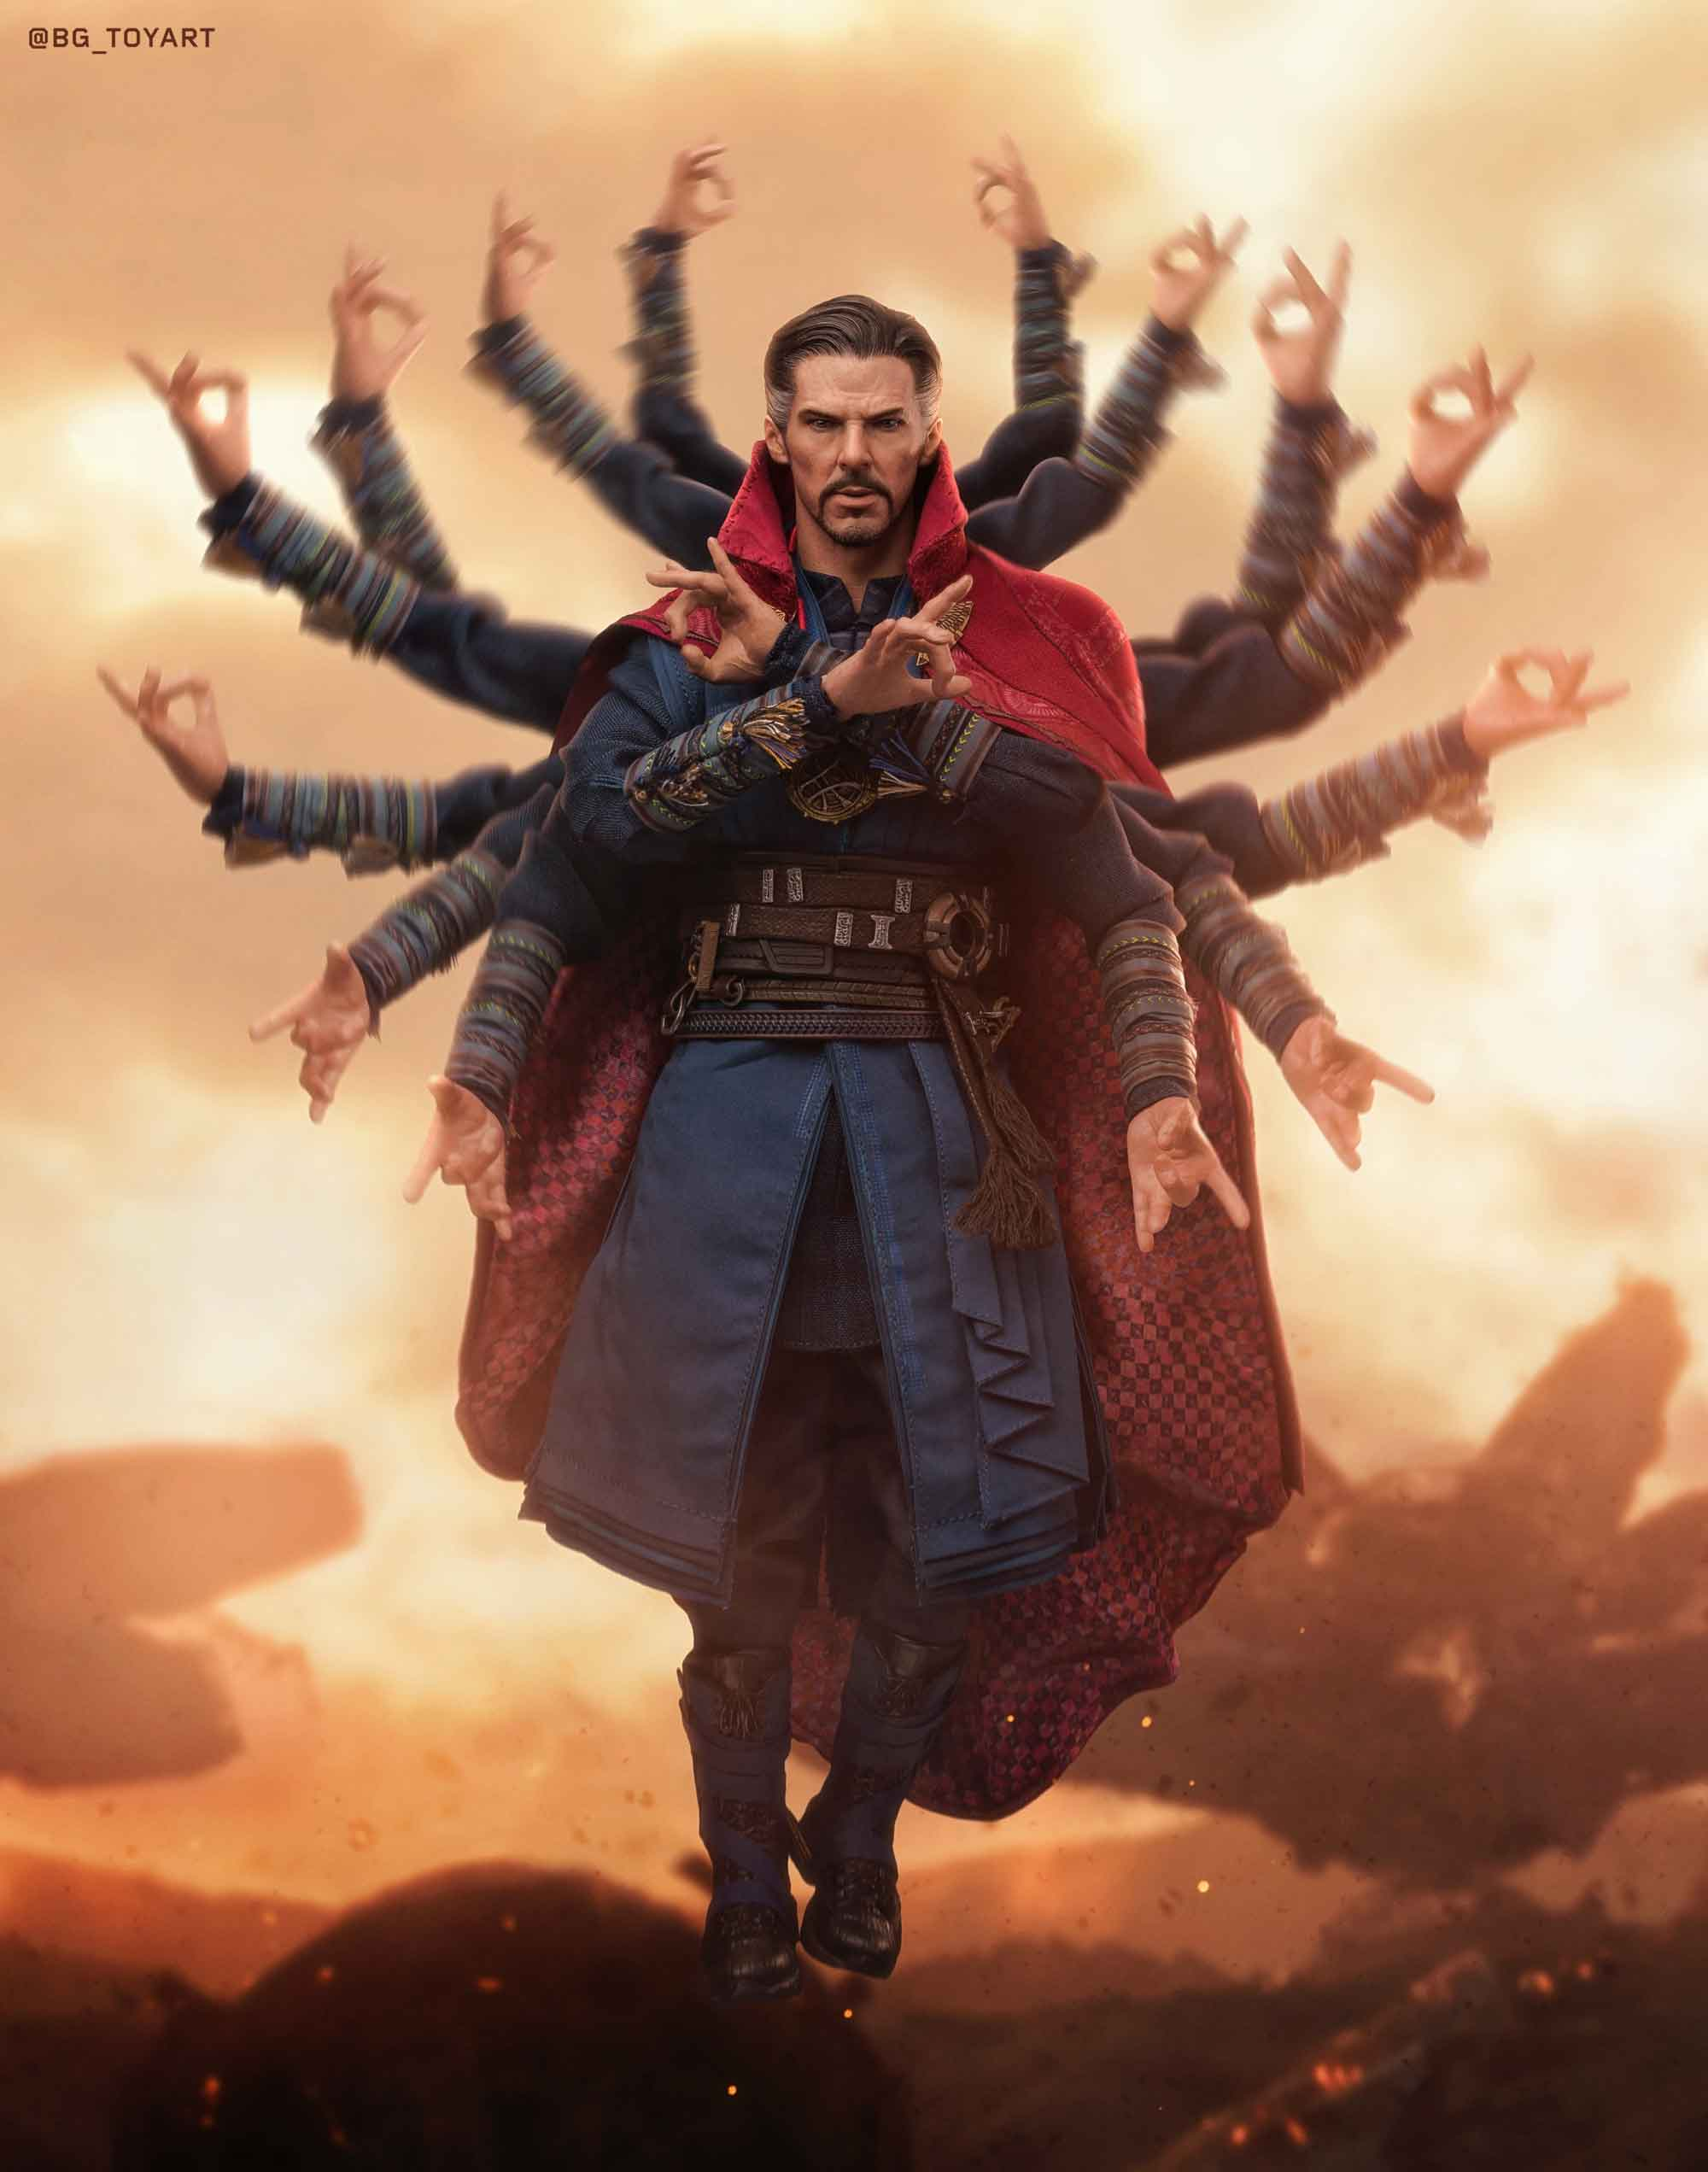 bloggerreview_doctorstrange_alex (2)